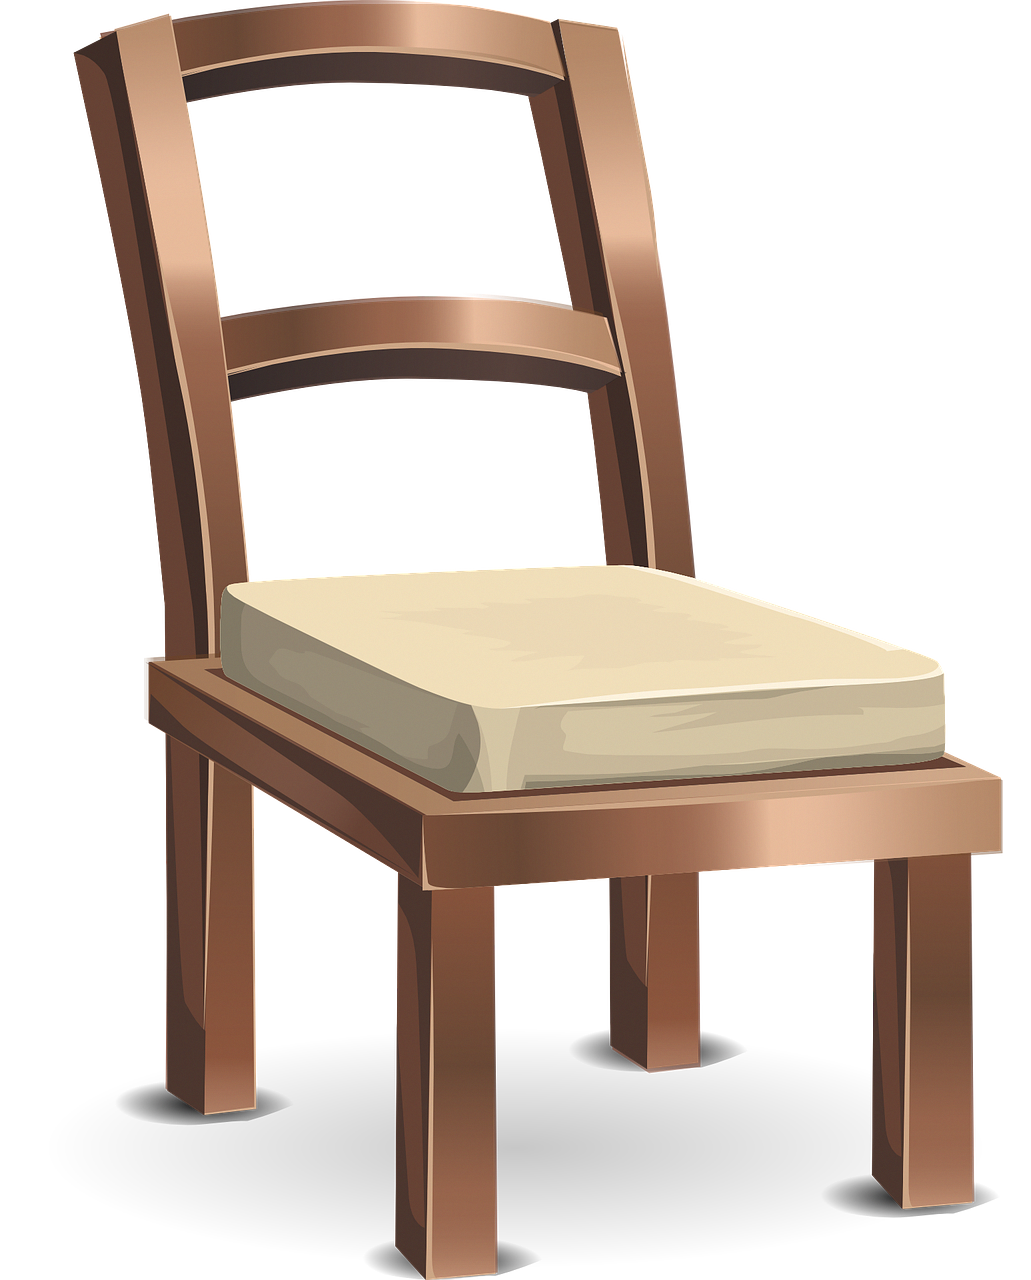 Home Decor, Wooden, Chairs, Furniture, Brown, Frames